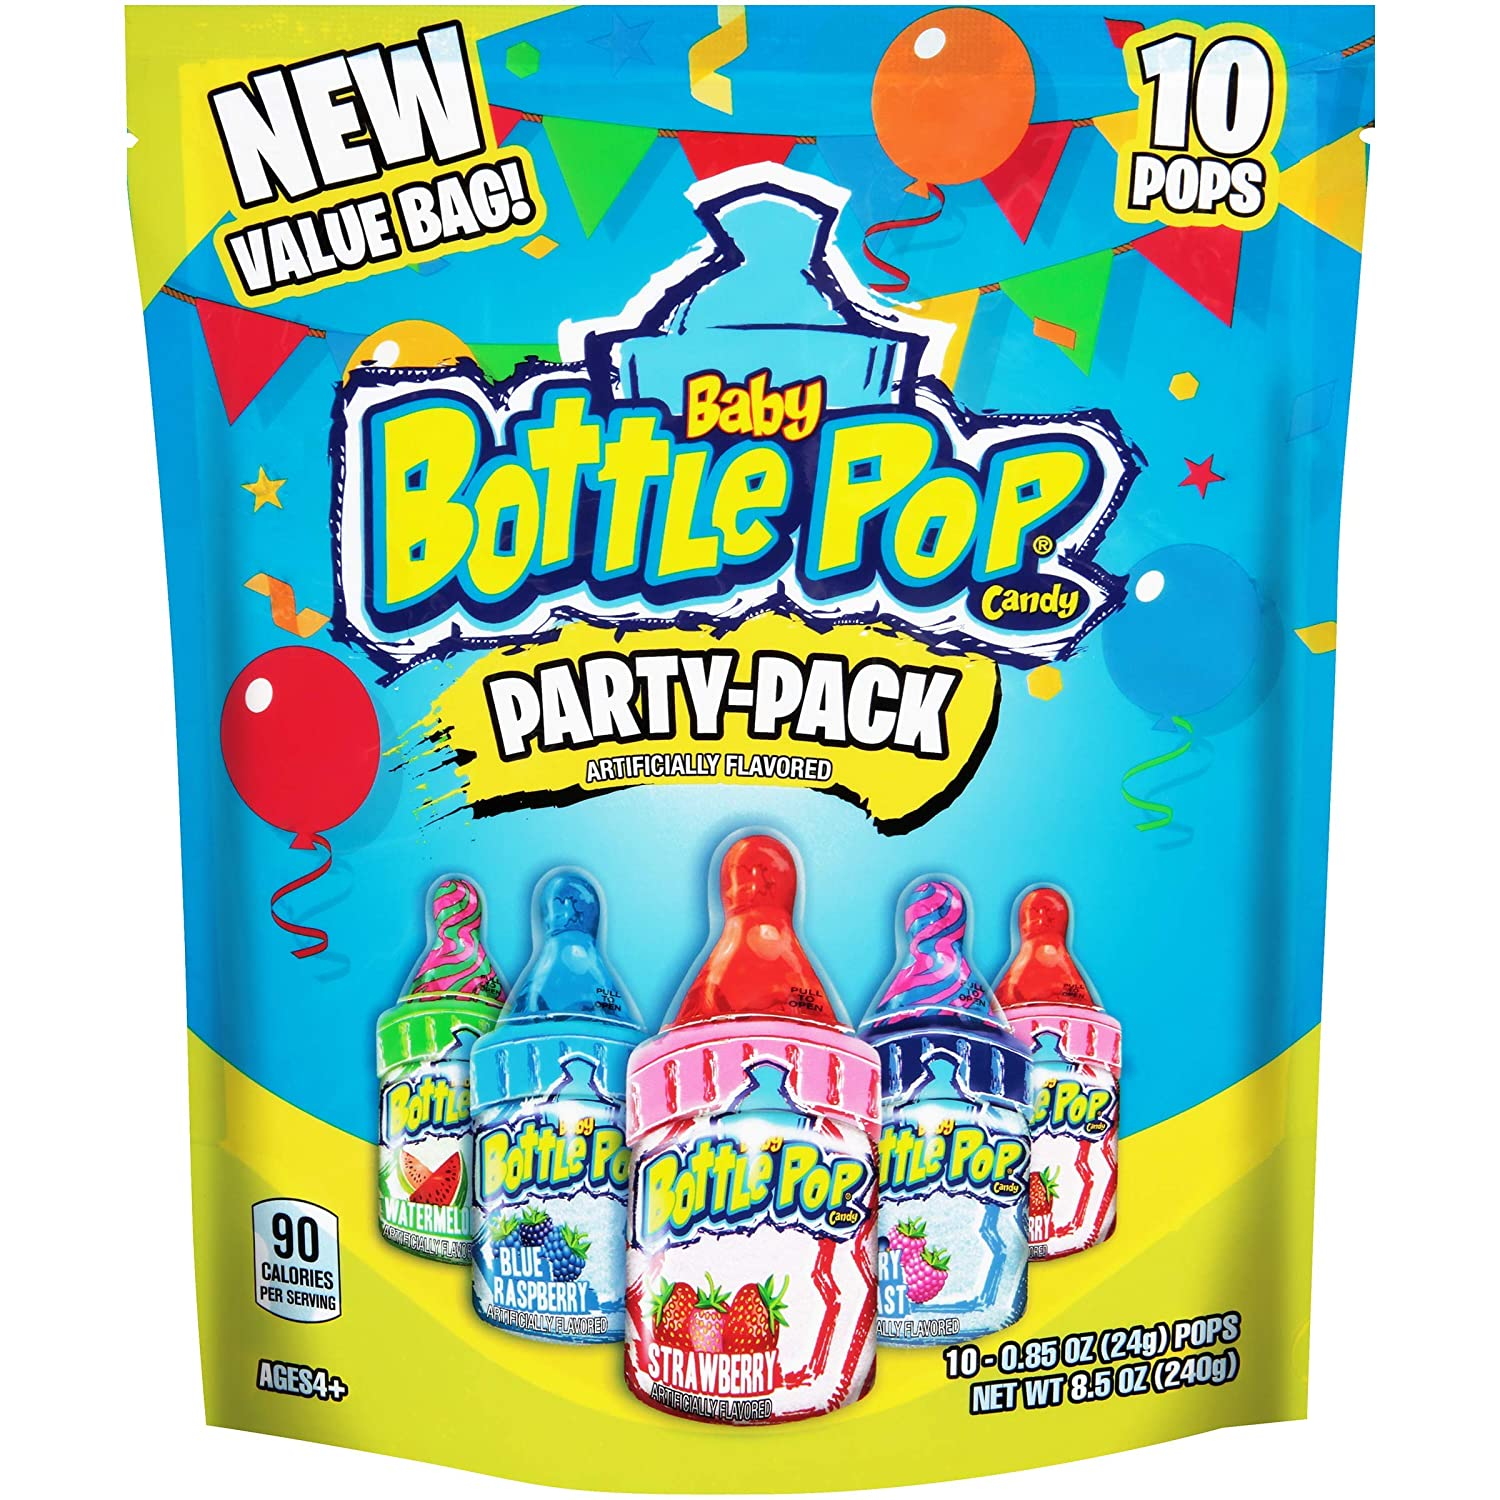 Package of Bottle Pop candy